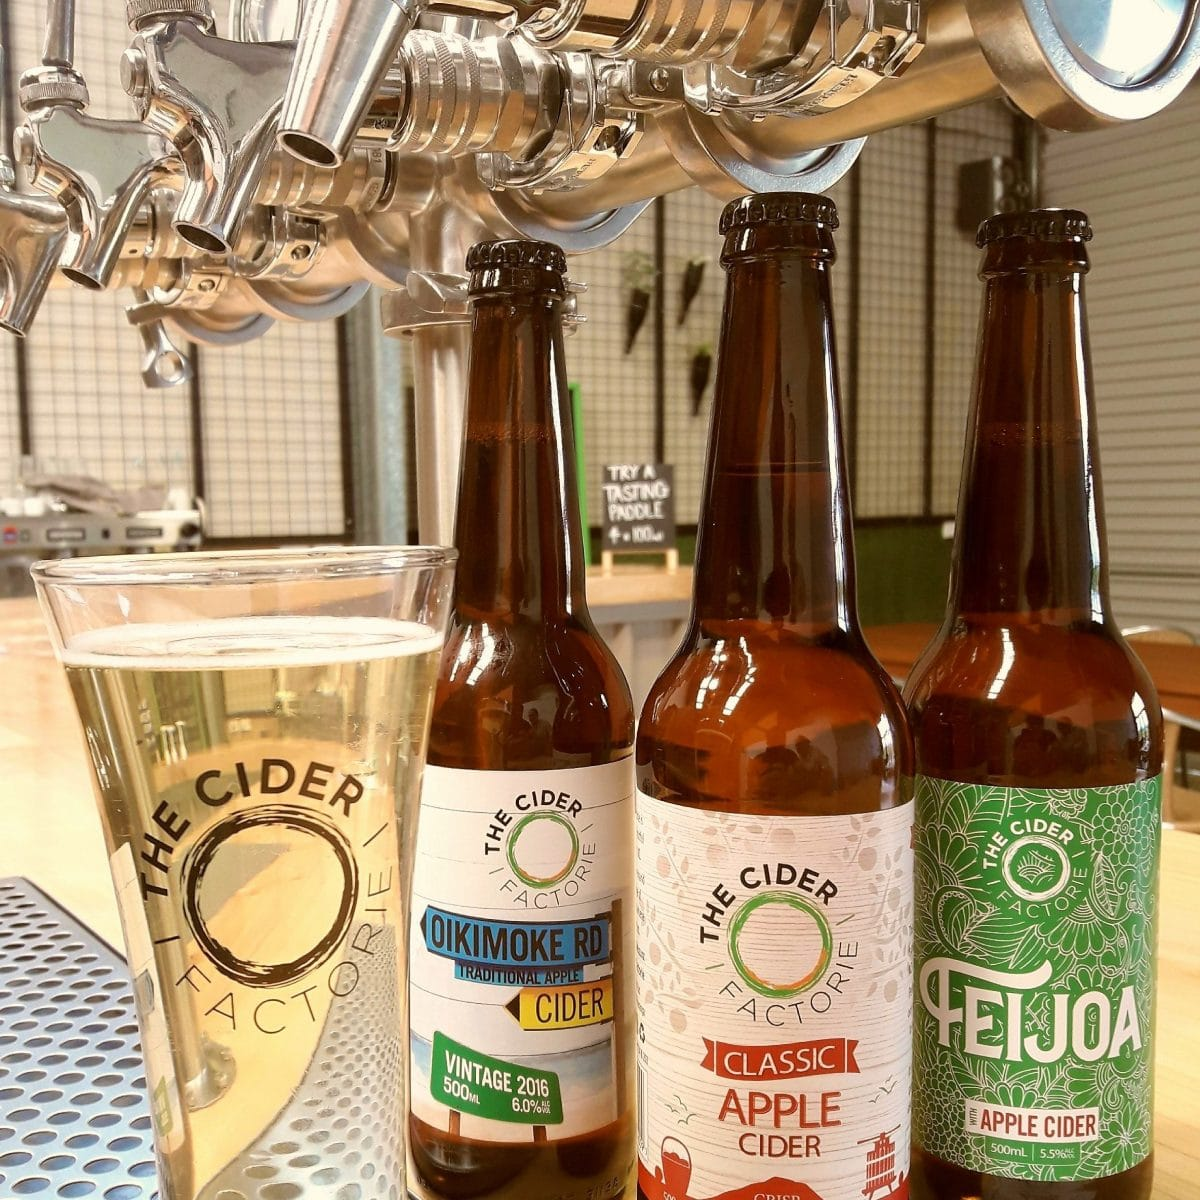 A small selection of our ciders sitting on the top of the bar in front of the bar taps.